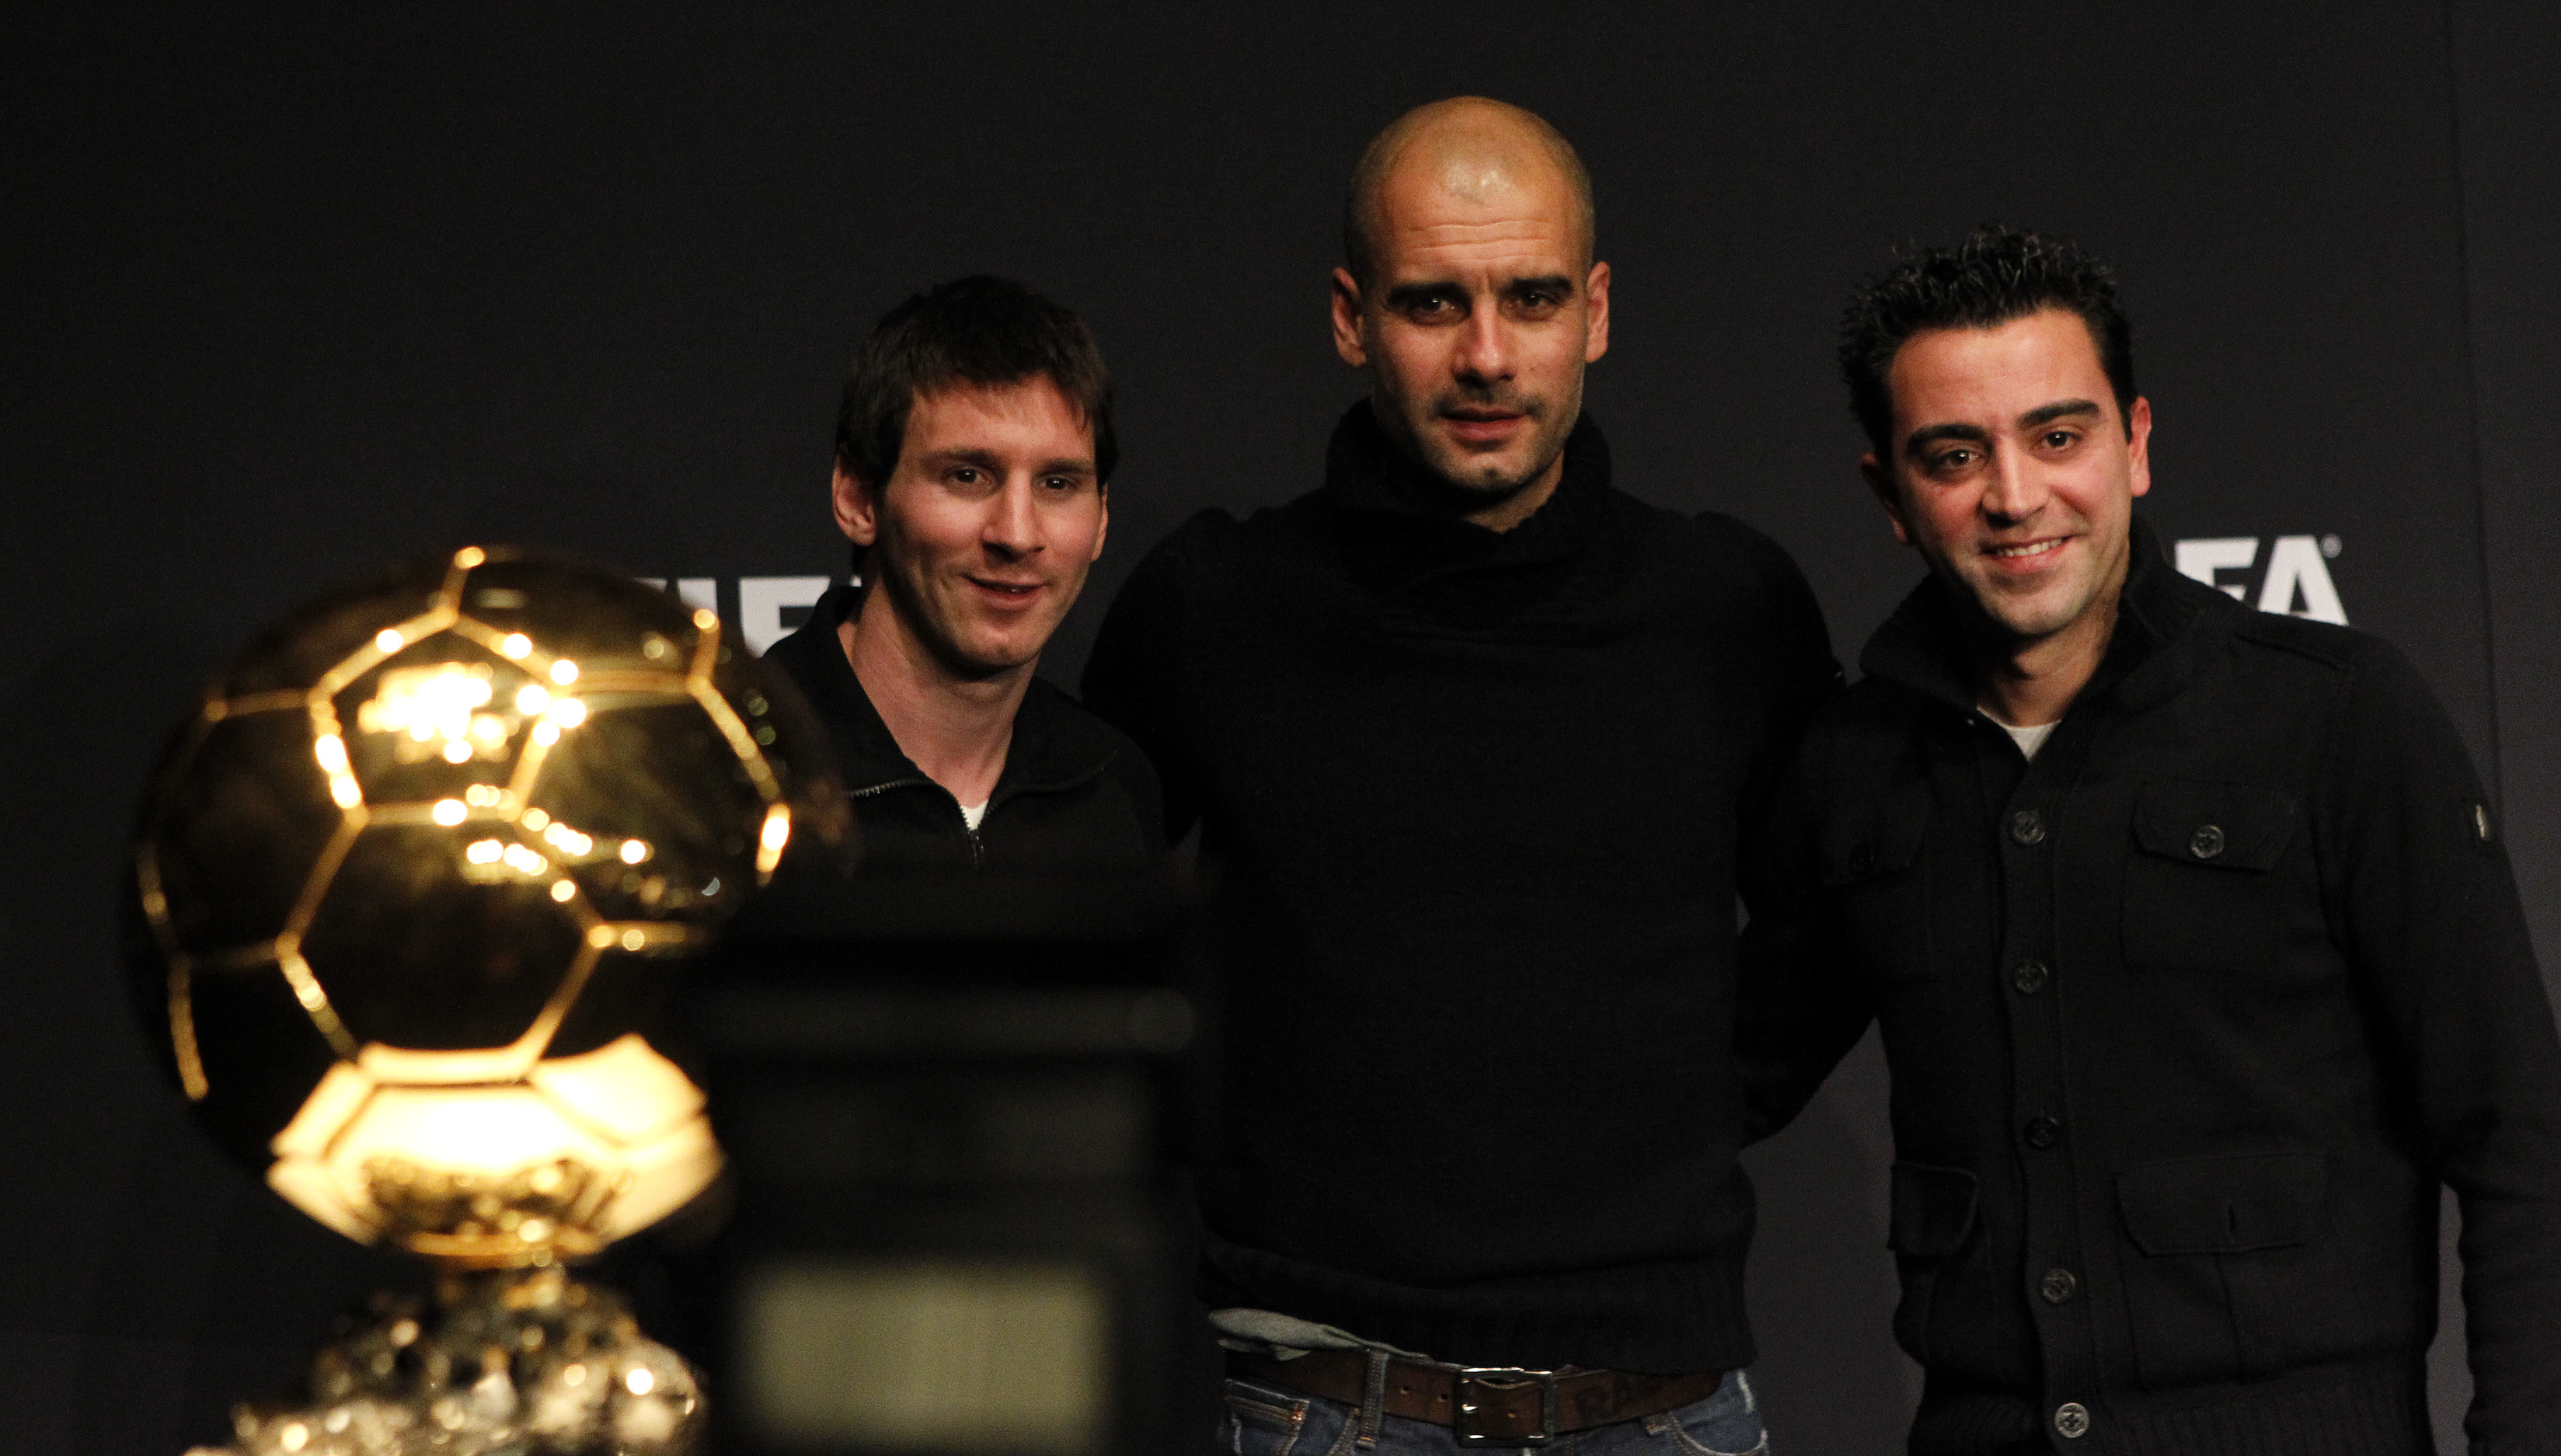 FIFA Men's World Player of the Year 2011 nominees Lionel Messi (L) of Argentine and Xavi (R) of Spain pose together with FIFA World Coach Men's Football 2011 nominee Pep Guardiola (C)